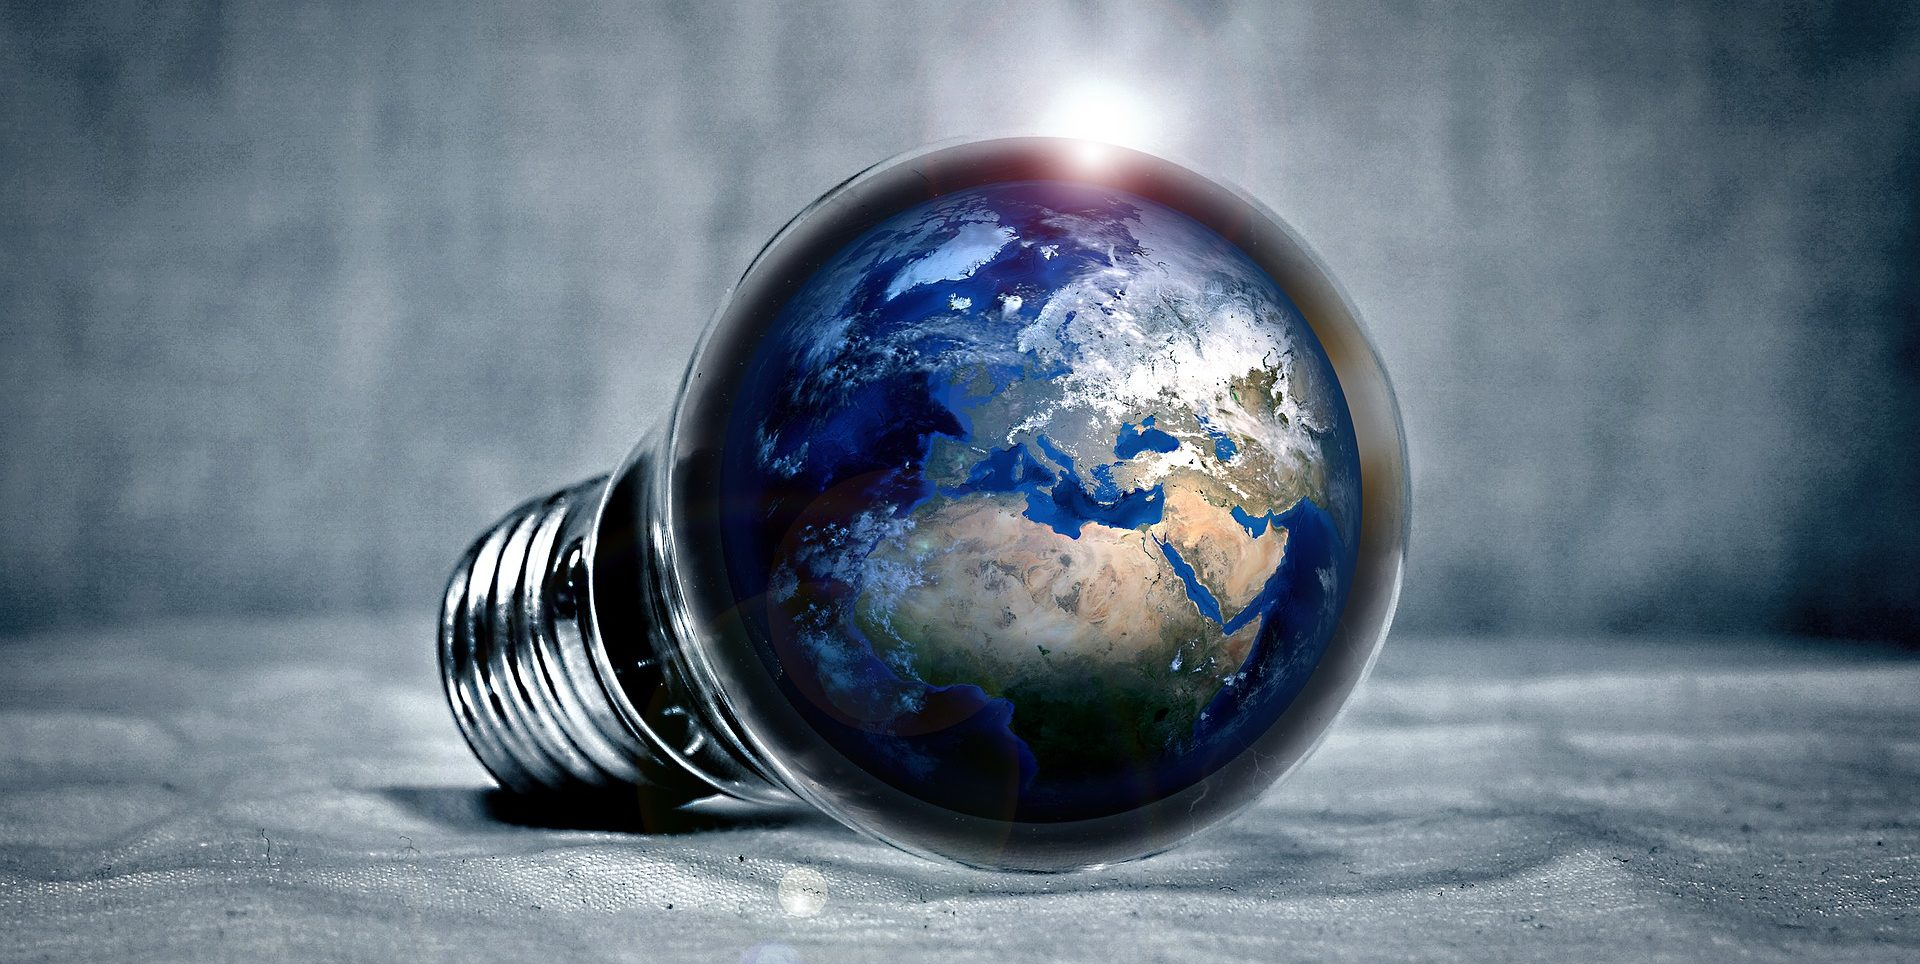 A light bulb laying on its side with the main part of the bulb looking like a globe.